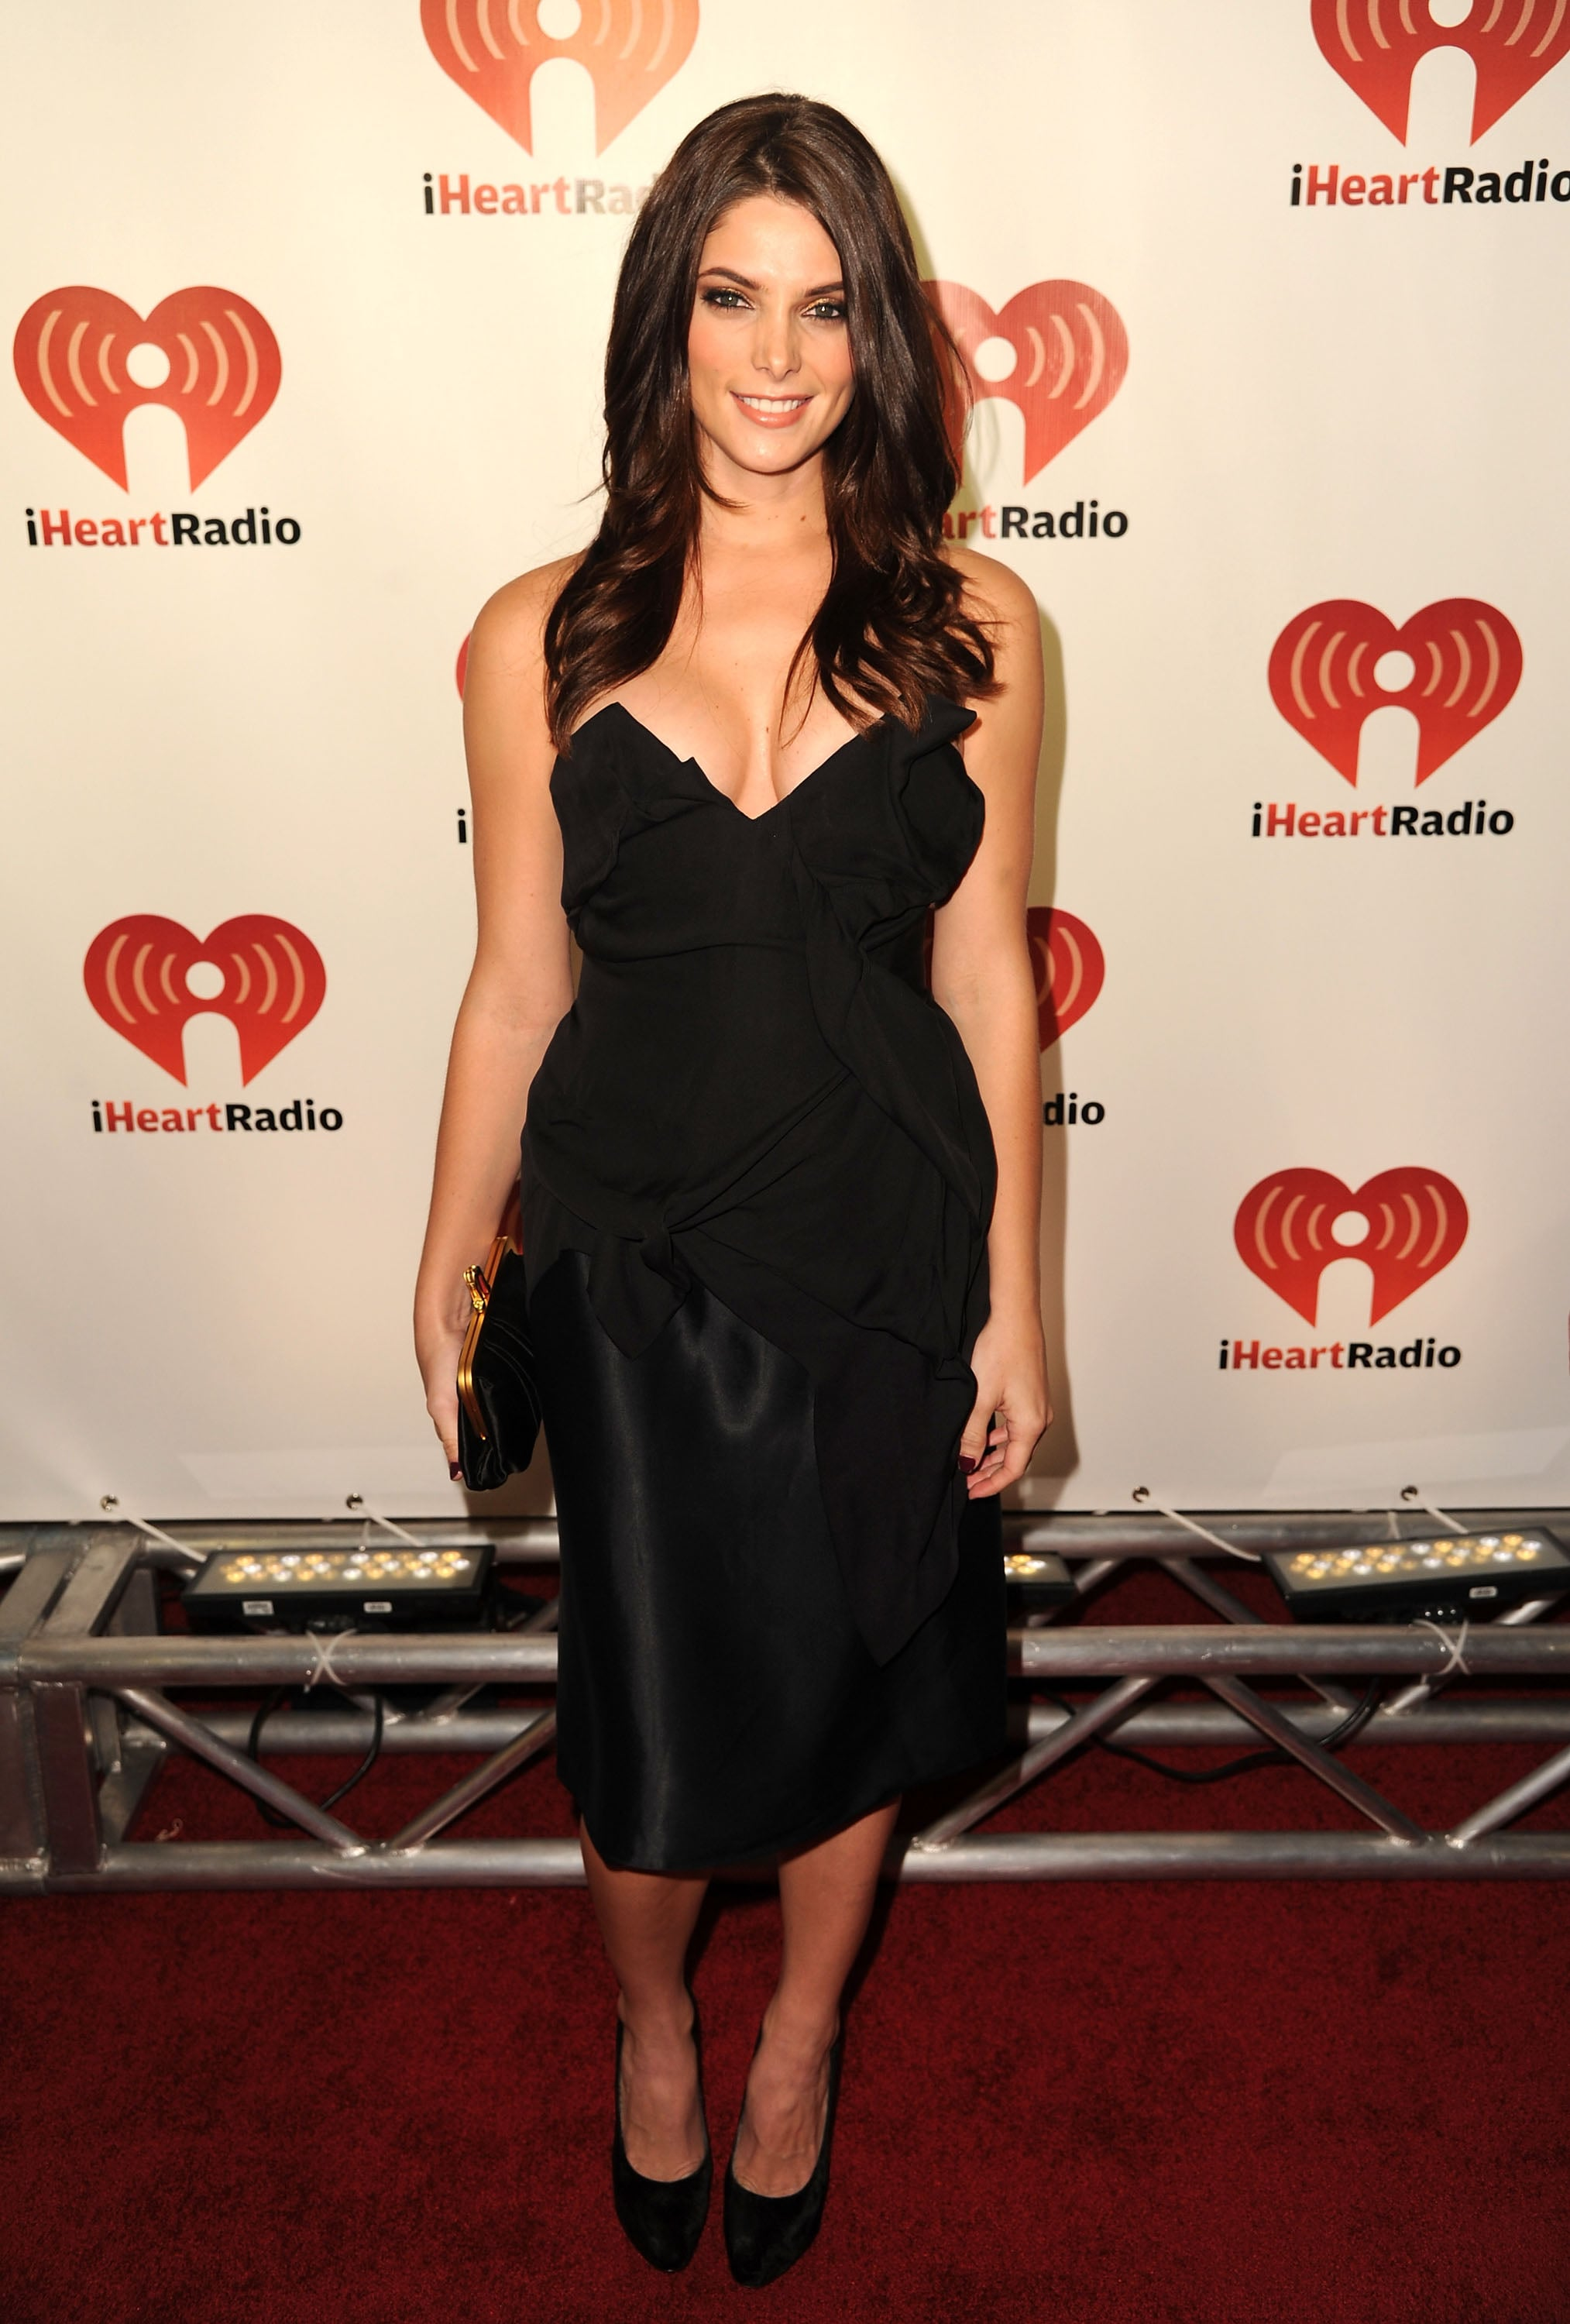 A classically sexy look for the iHeartRadio Music Festival in 2011.